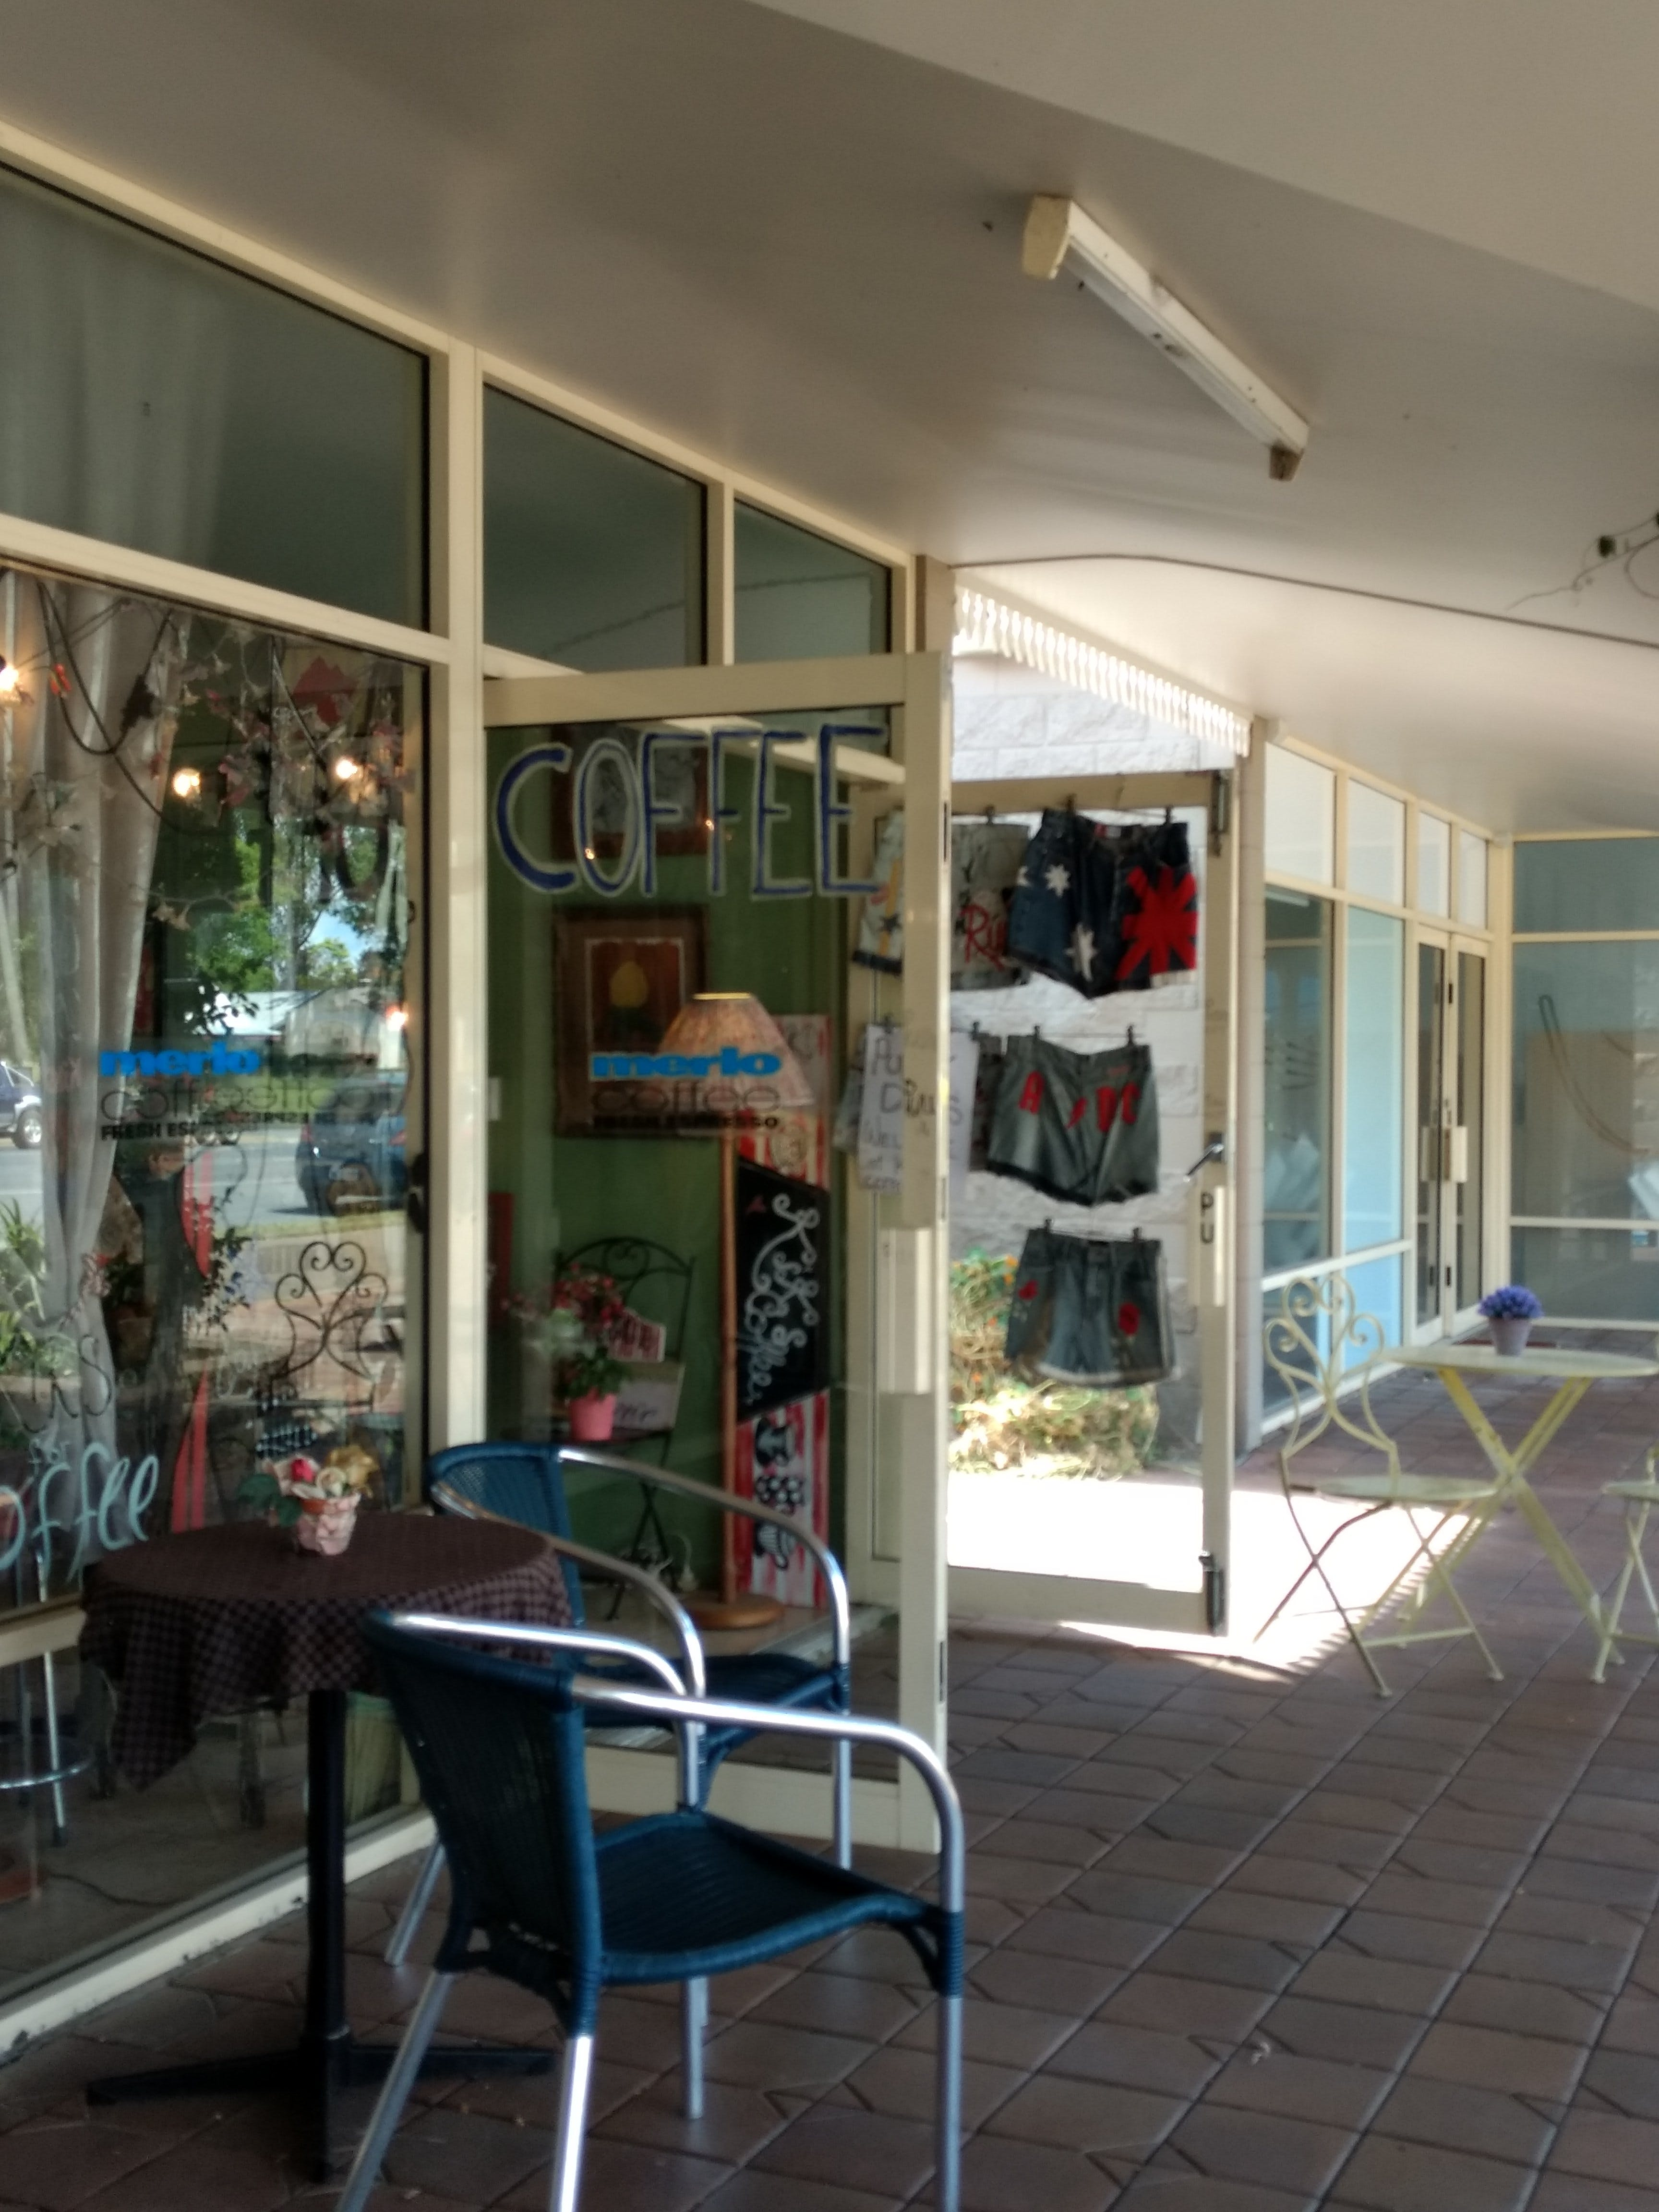 Cafe Kiks - Accommodation Fremantle